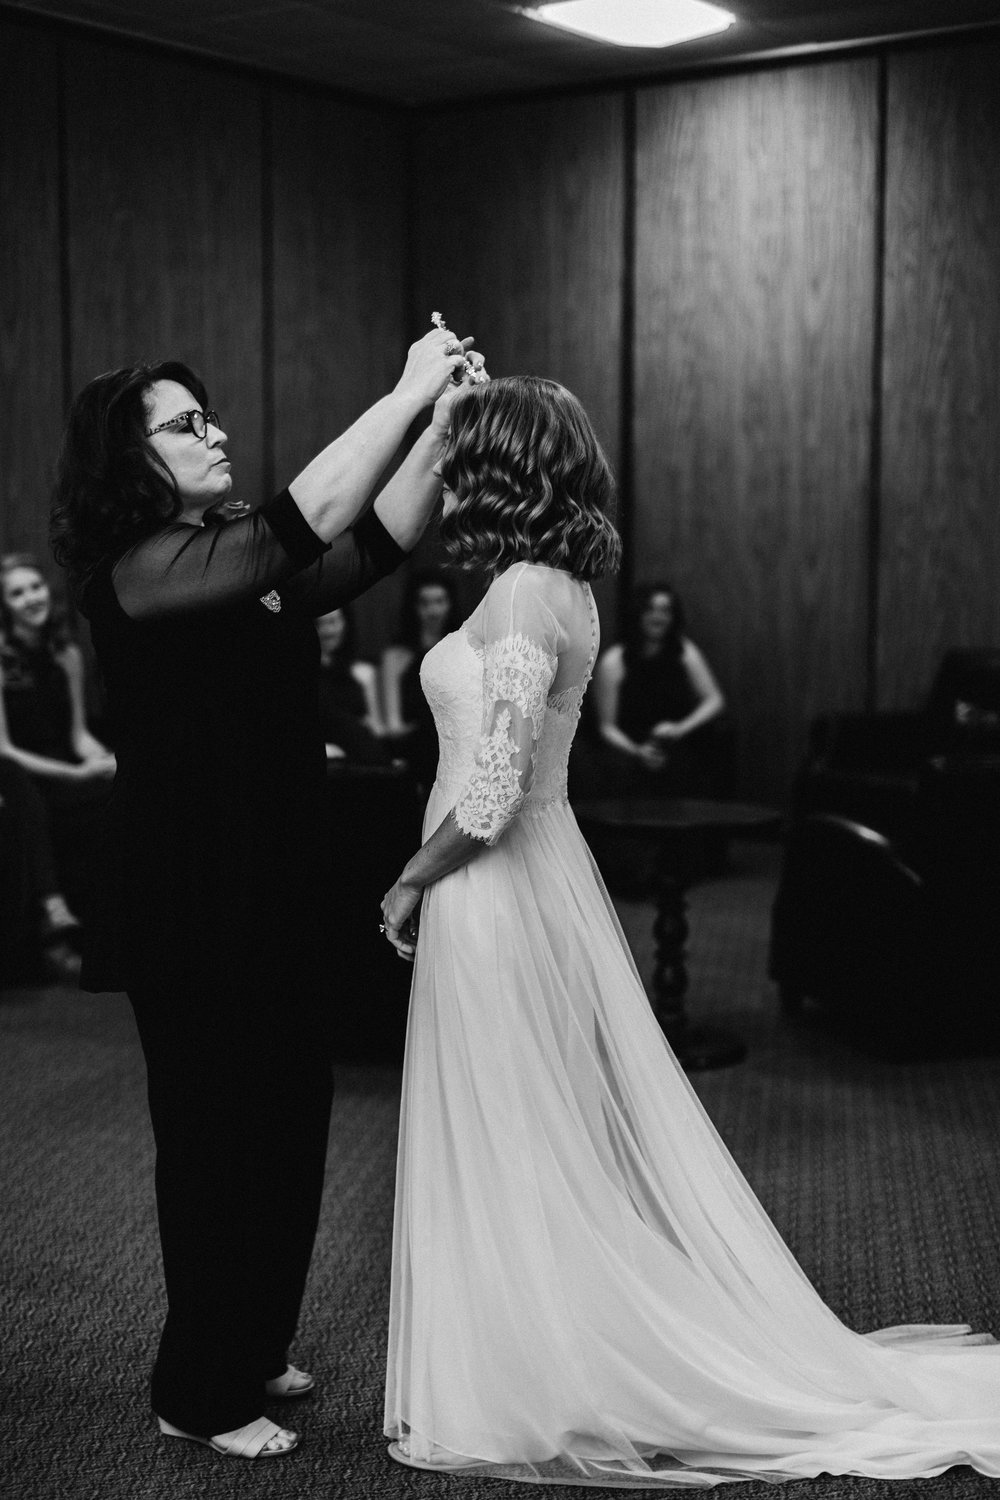 2018.03.24 Manny and Rachel Rivas Wedding Merritt Island (28 of 695).jpg